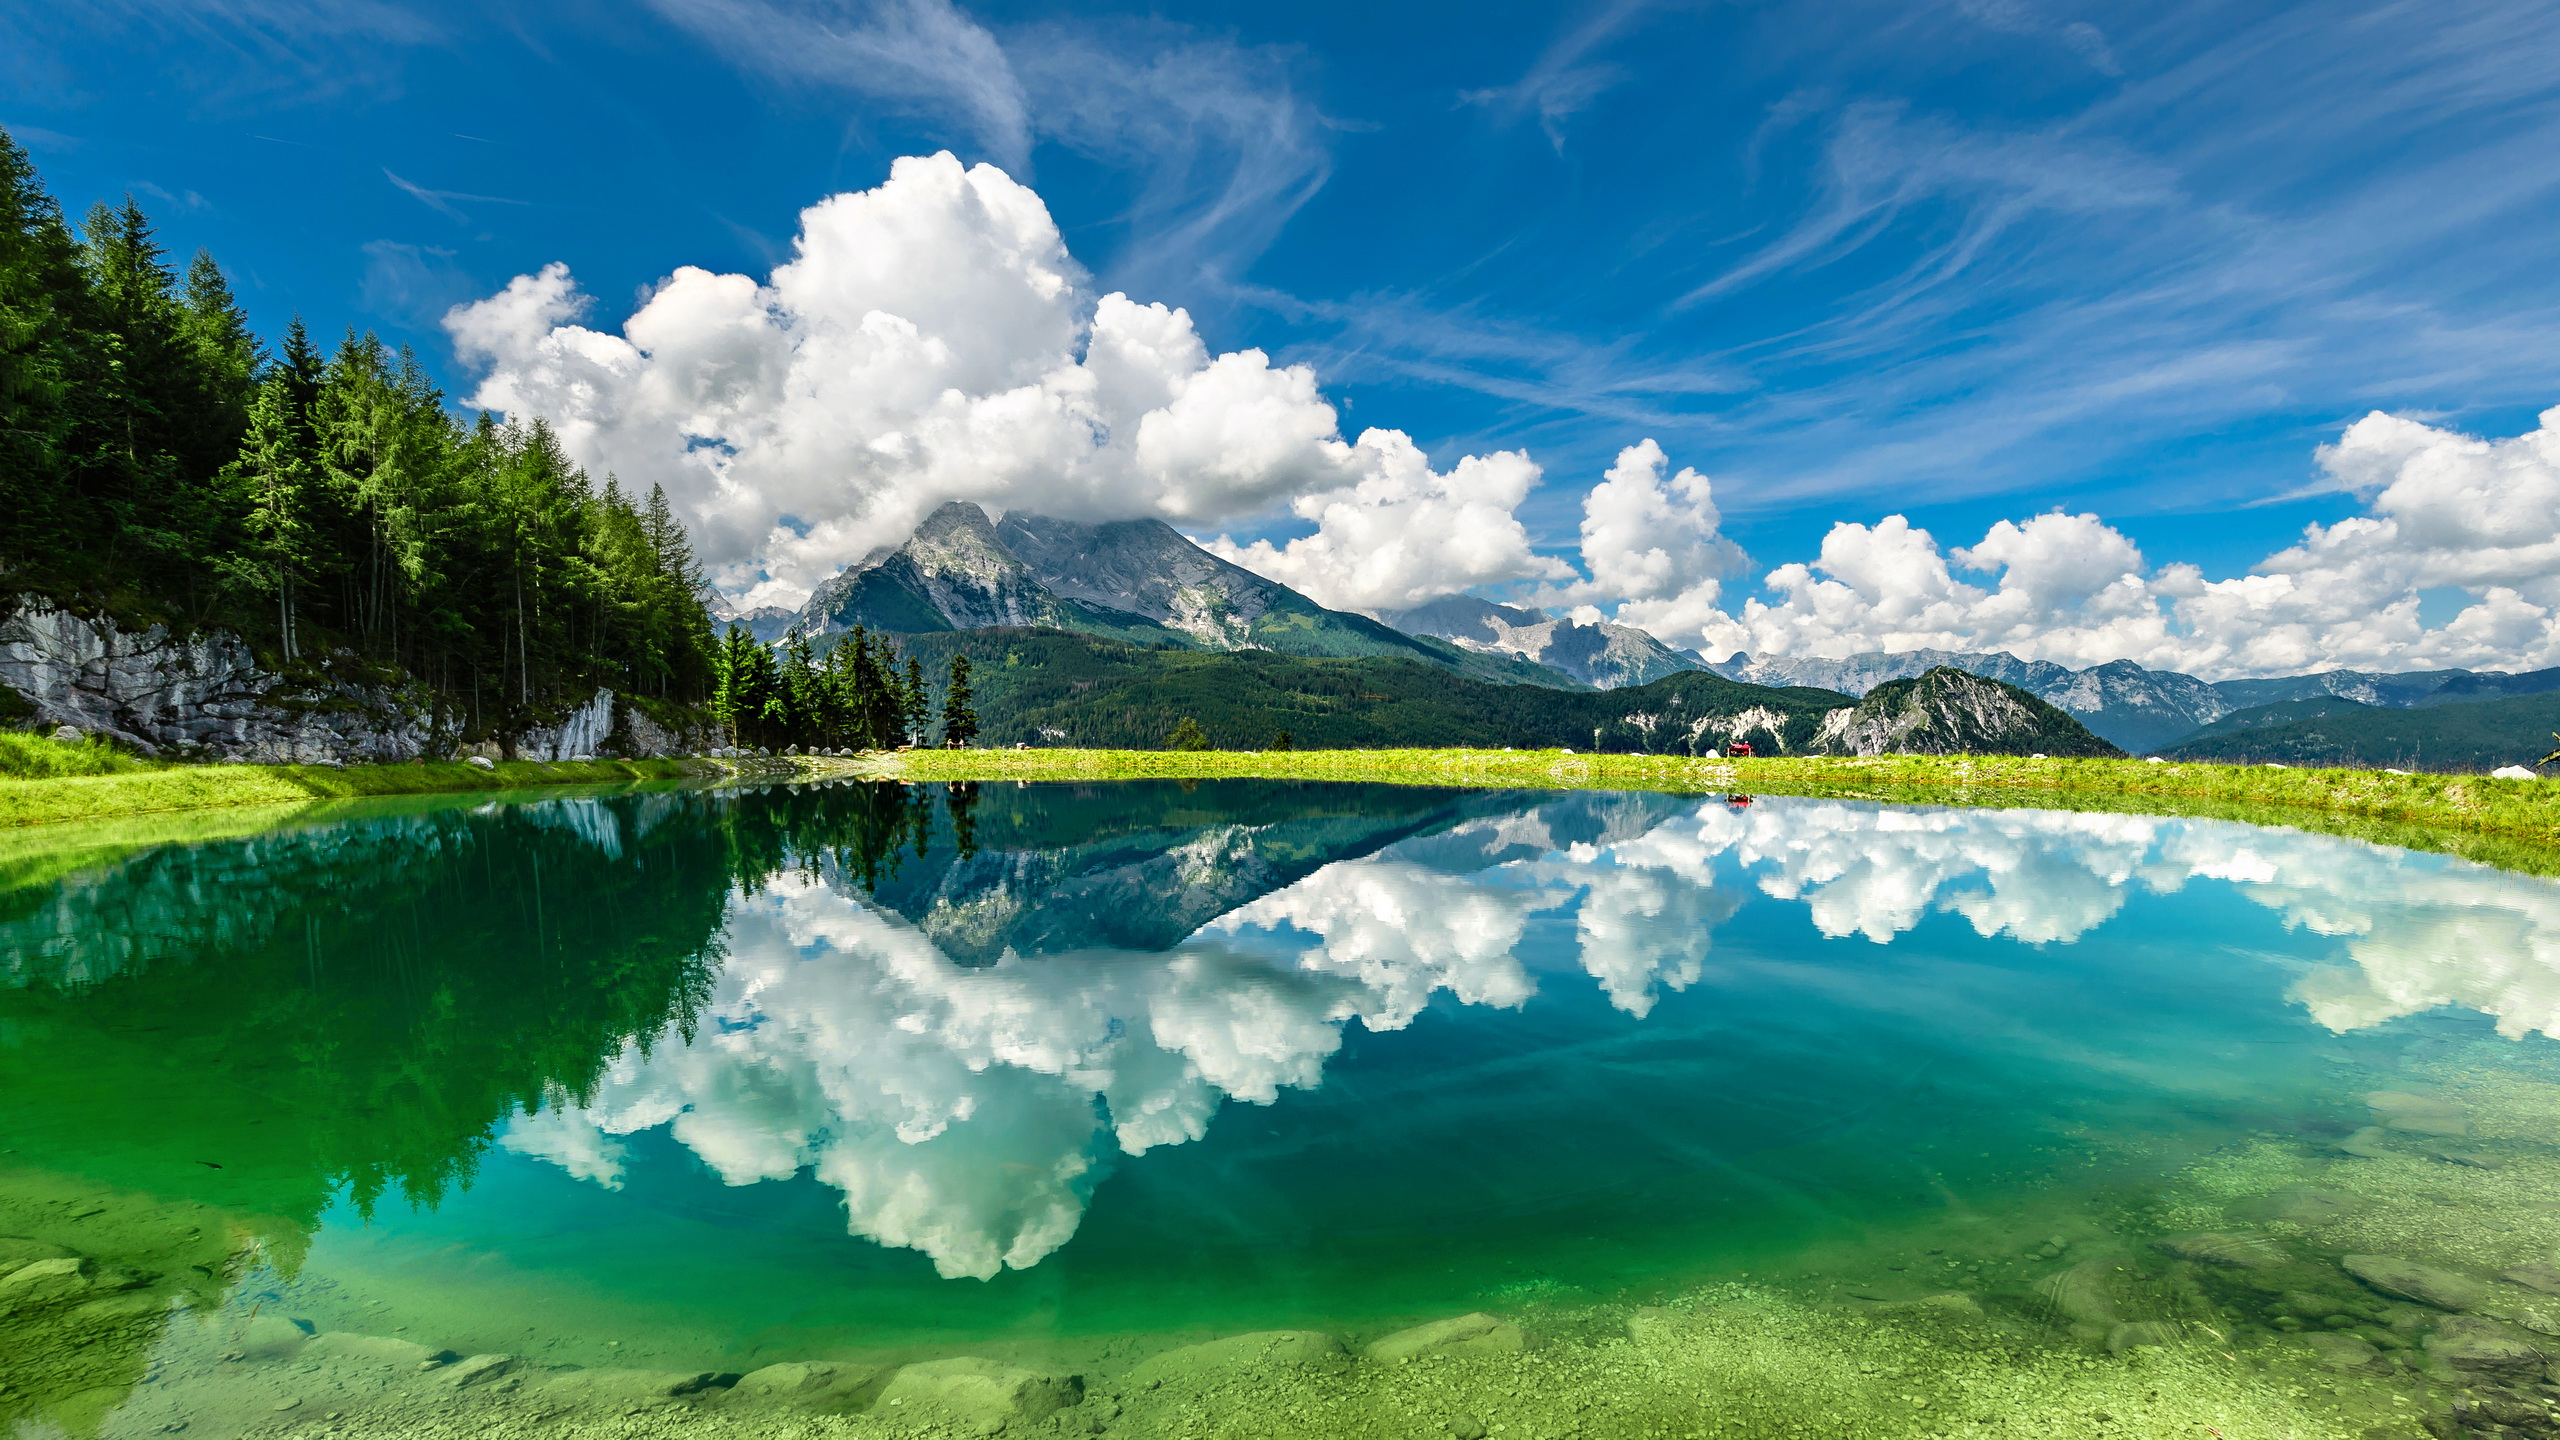 Beautiful 1024 1024 Hd Wallpapers For Tablets: Reflection HD Wallpaper